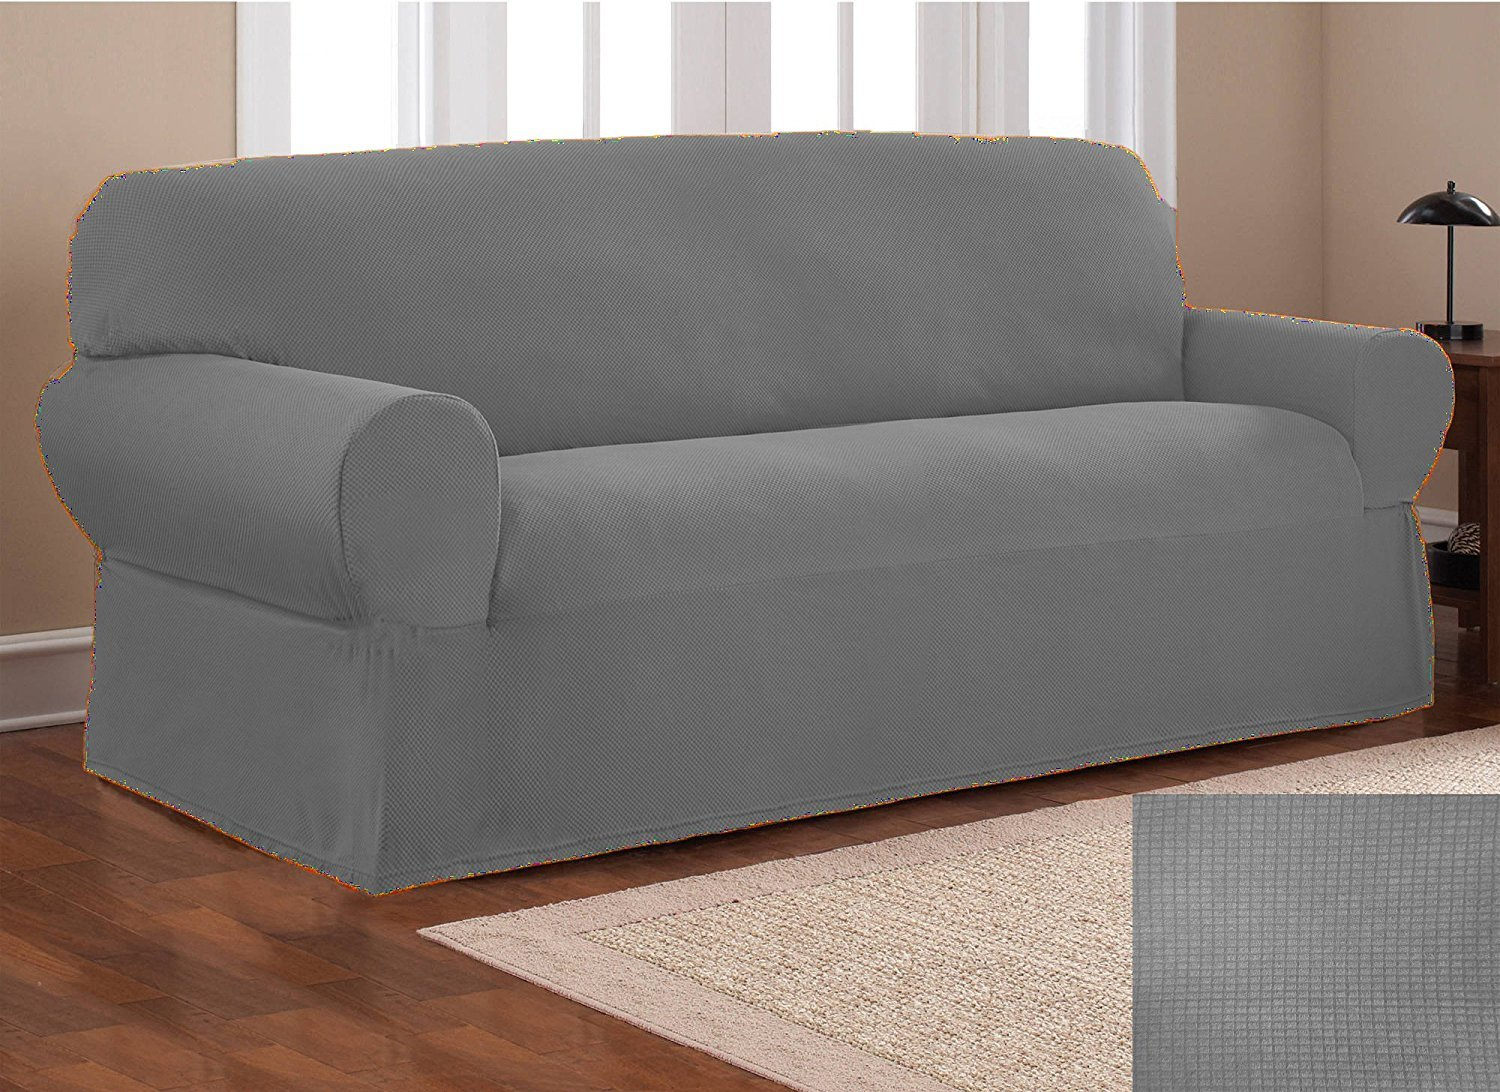 Elegant Home One piece Stretch to Fit Sofa Cover Furniture Couch Slipcover # Stella (Light Grey)